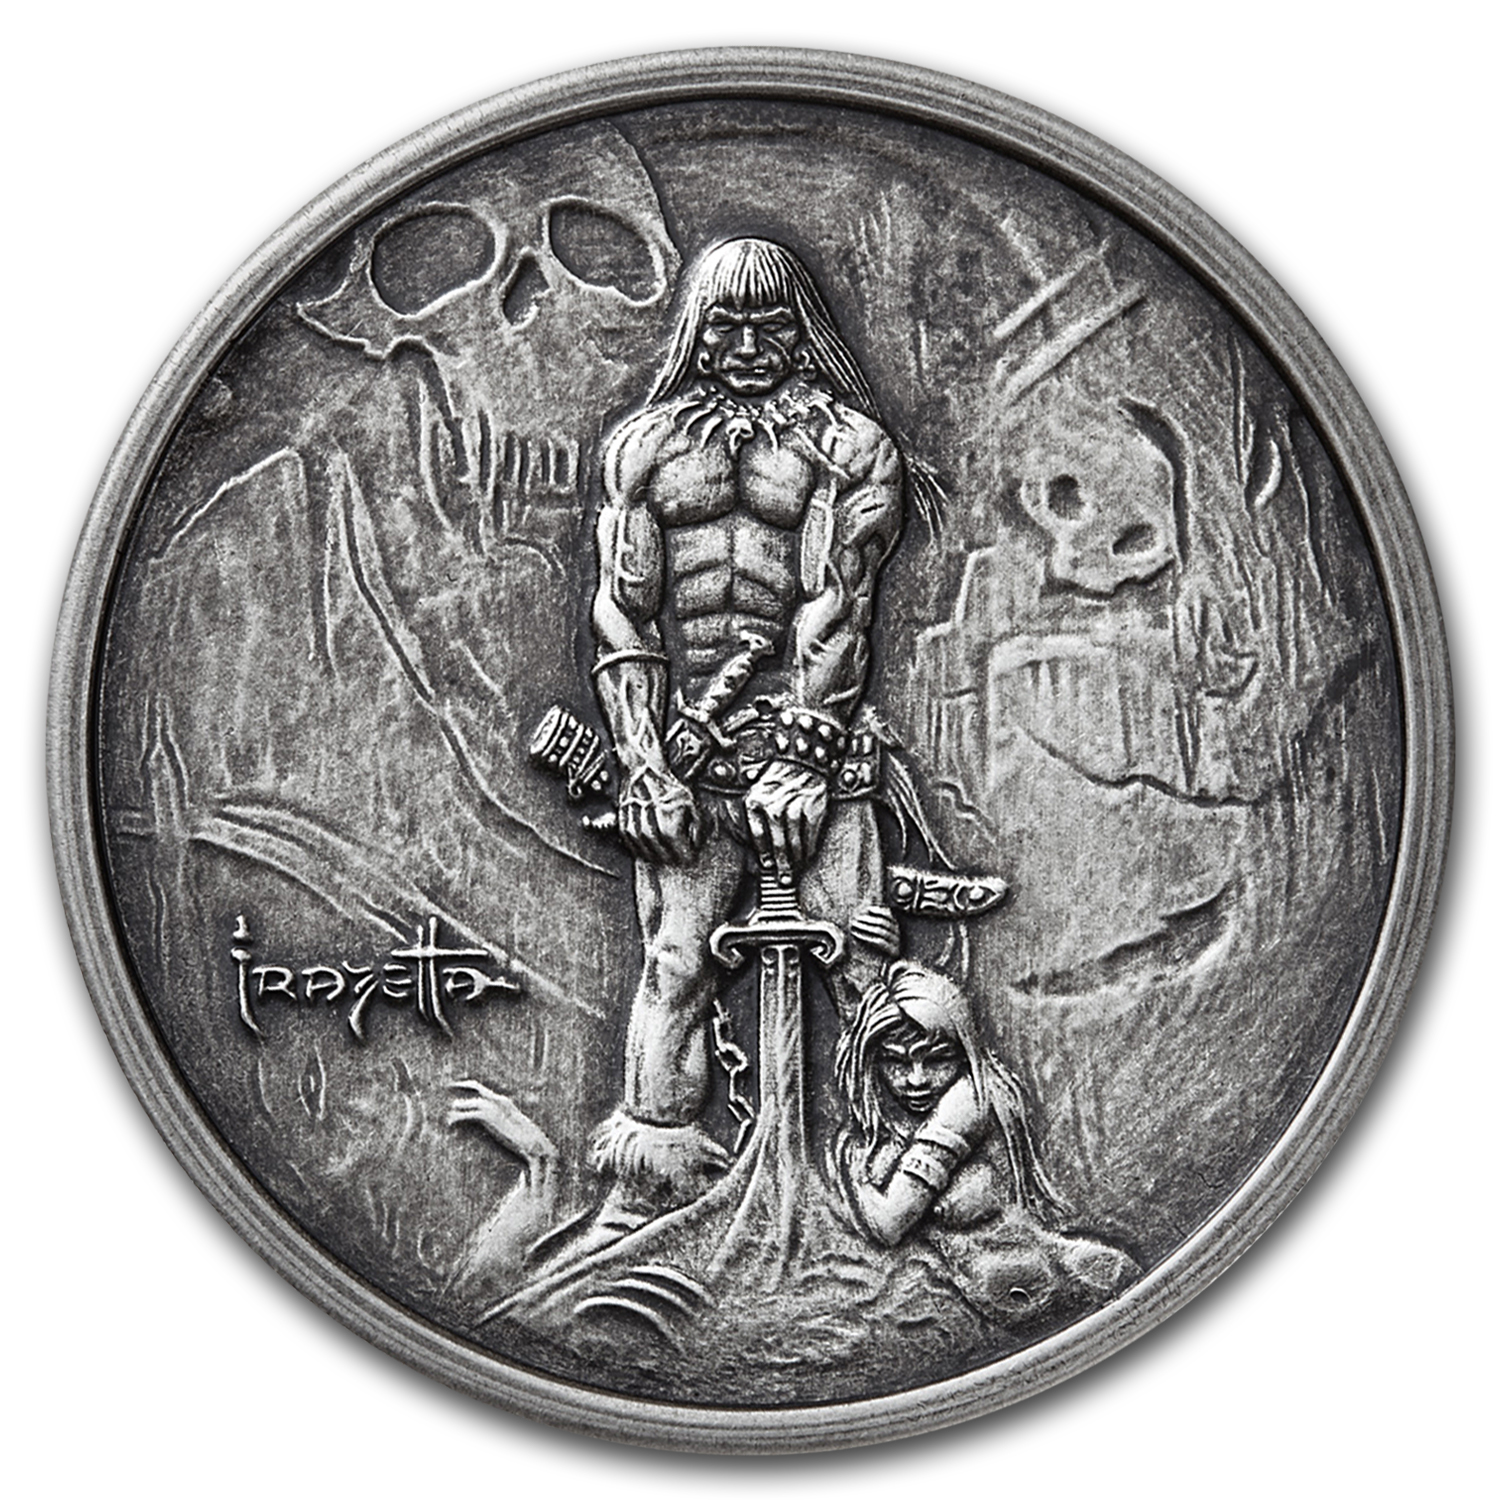 1 oz Silver Antique Round - Frank Frazetta (The Barbarian)